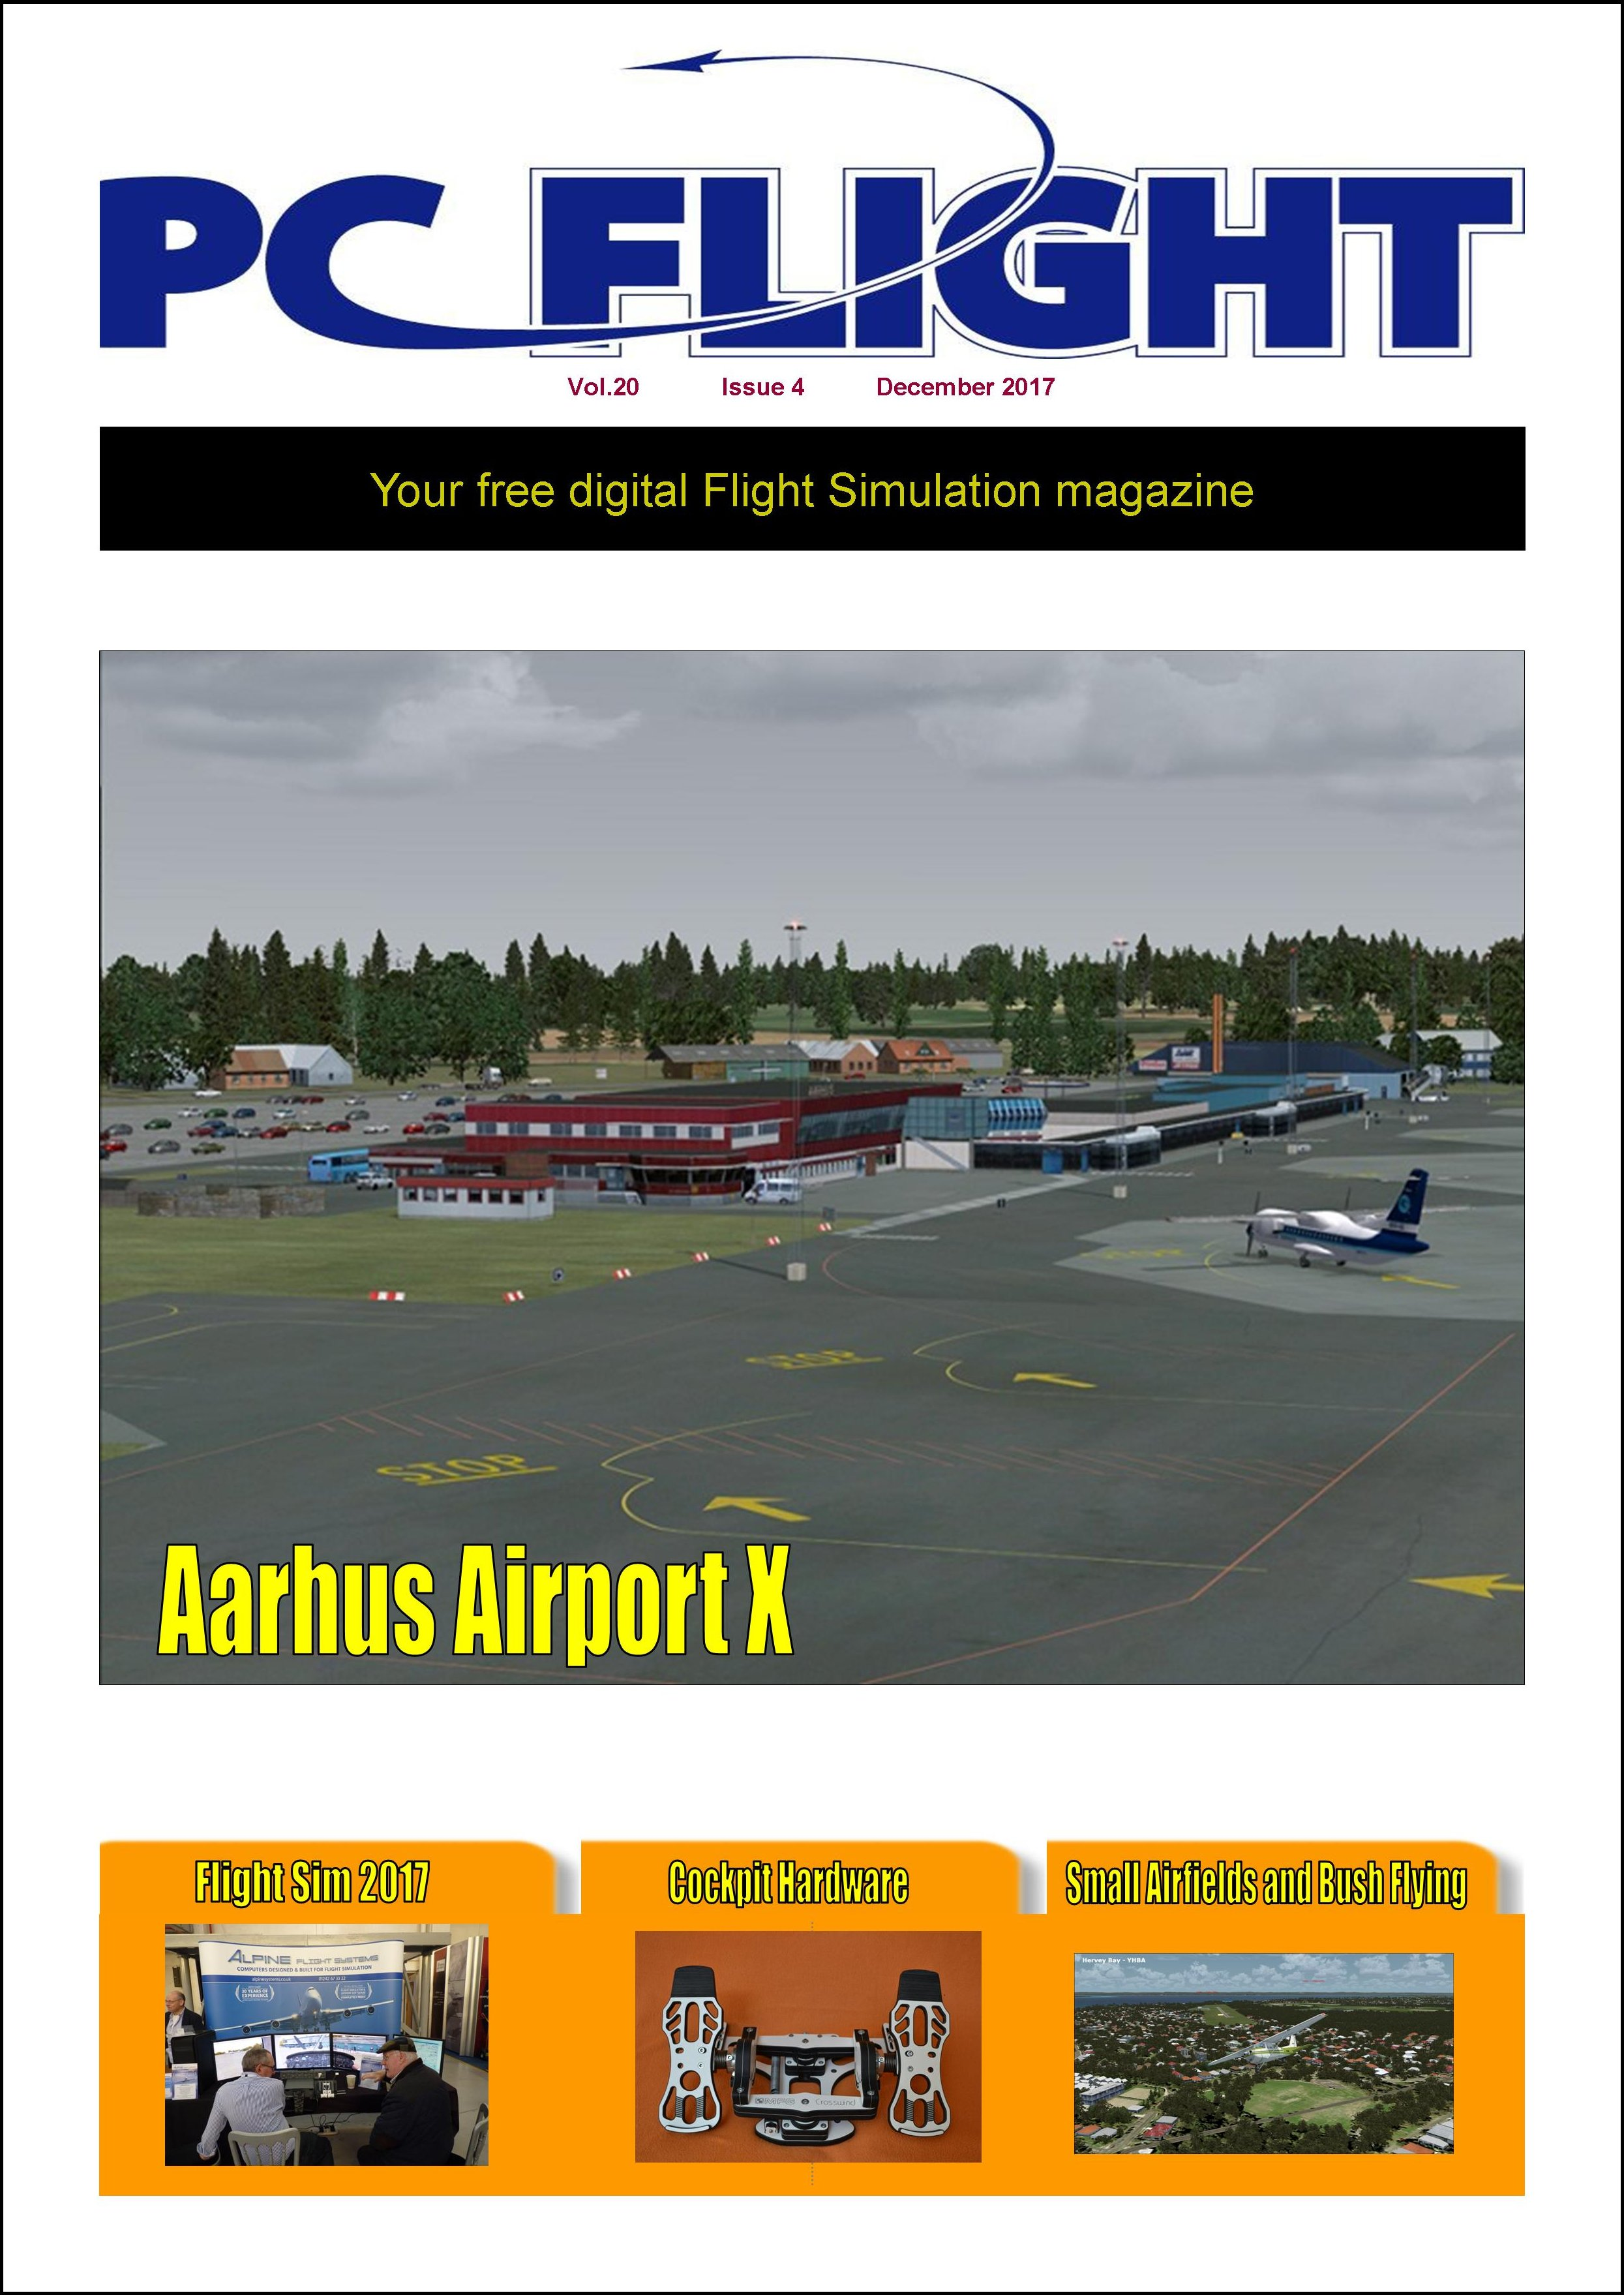 PC FLIGHT ISSUE 4 DECEMBER 2017 - FREE